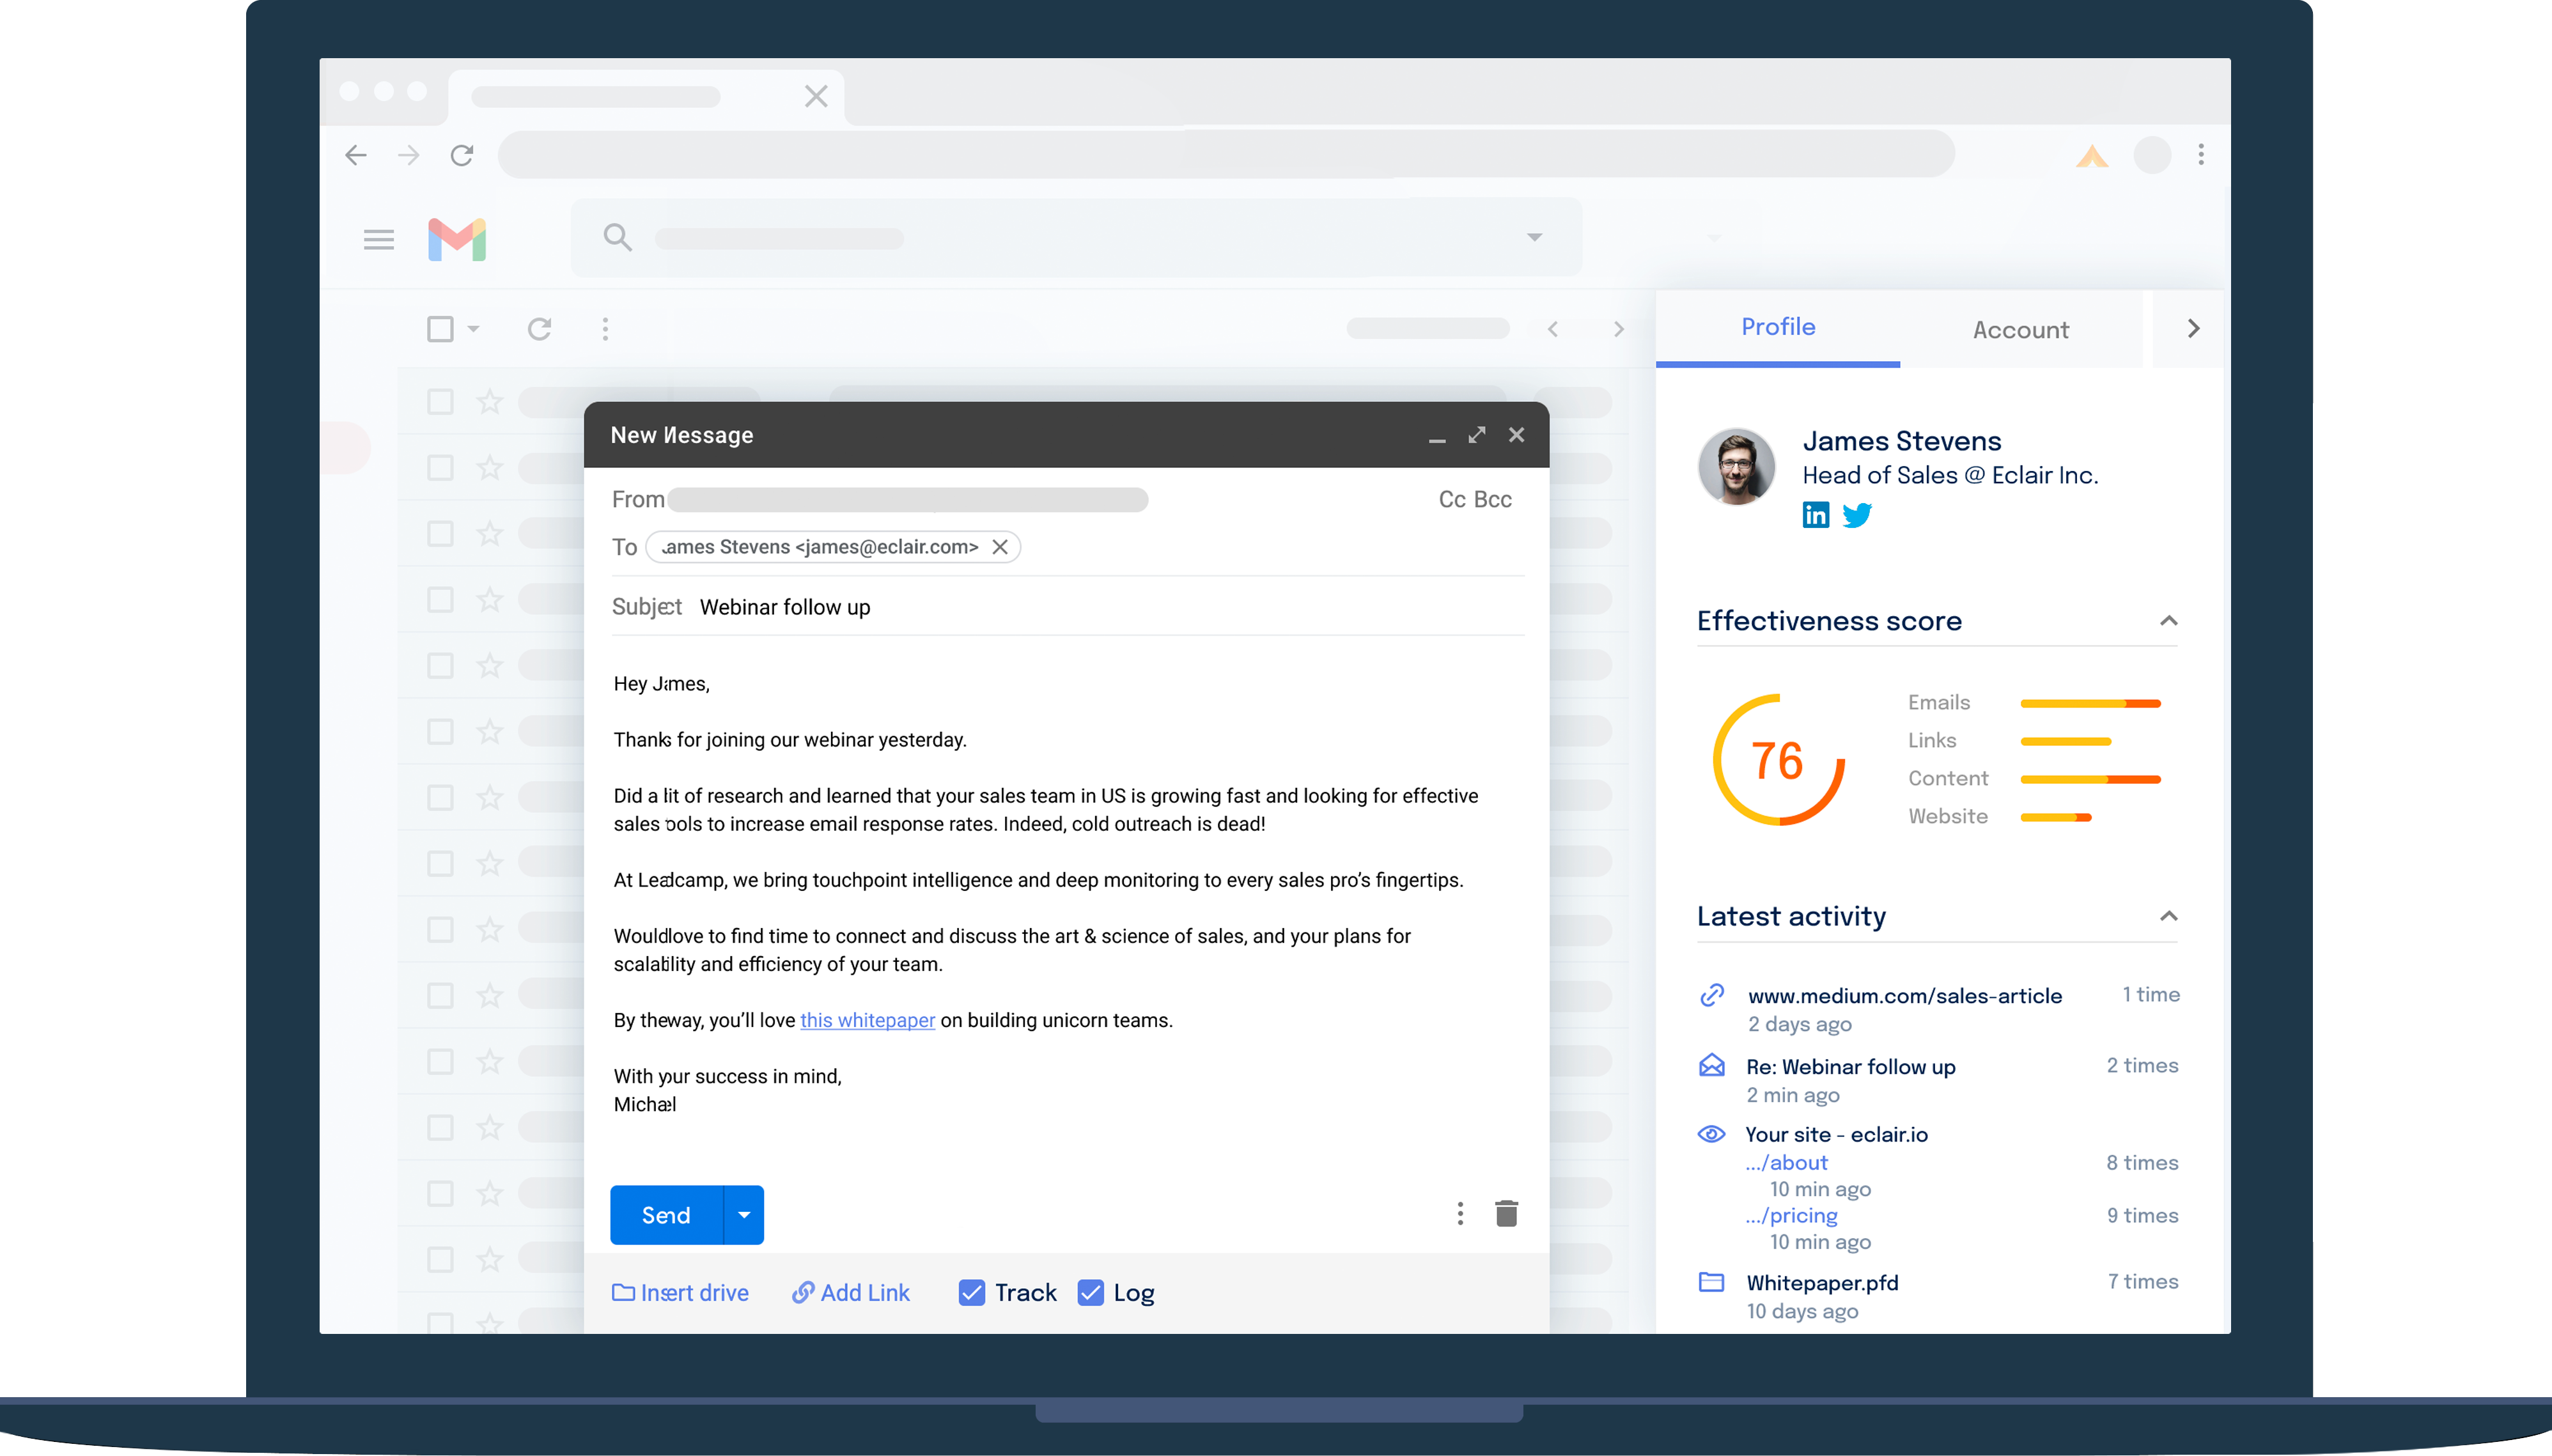 Leadcamp's Lead Engagement Platform captures all sales interaction data - from emails and meetings to website and content distribution - then uses AI to understand and score the engagement. The result? Crushing your quotas, quarter after quarter.